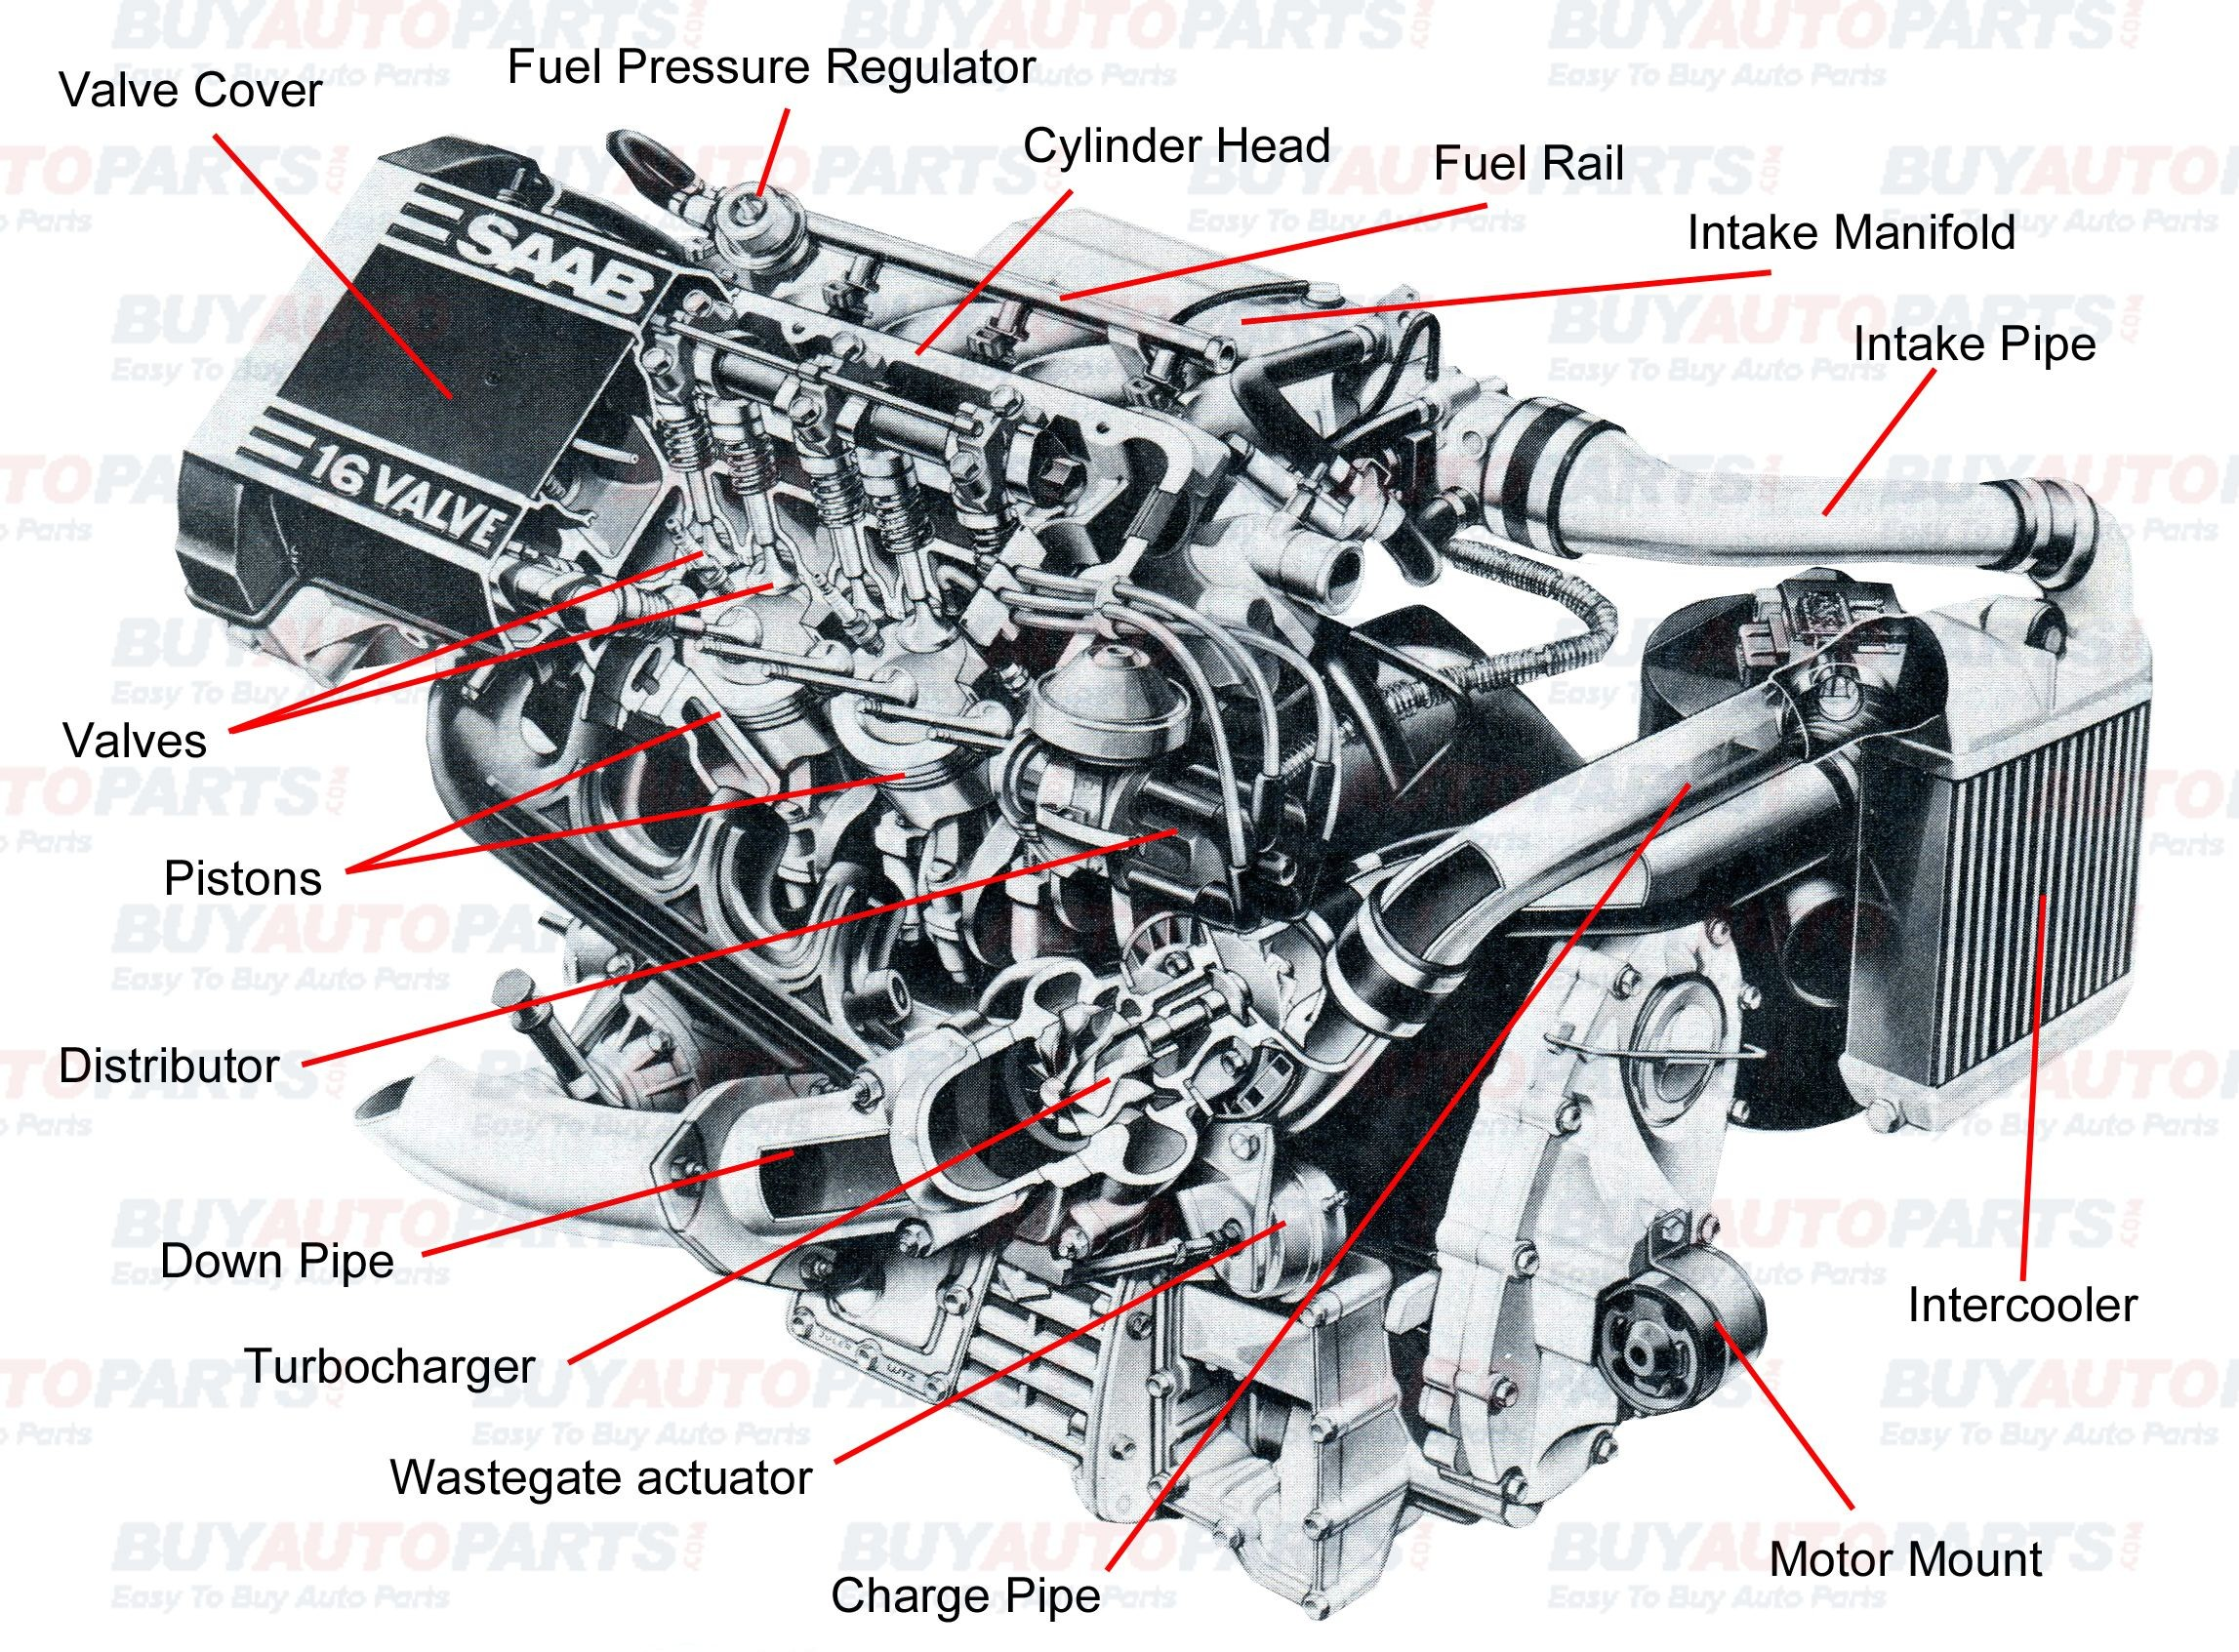 Car Suspension Parts Diagram Pin by Jimmiejanet Testellamwfz On What Does An Engine with Turbo Of Car Suspension Parts Diagram Exterior Parts A Car Beautiful Automobile Body Parts Diagram Eq69